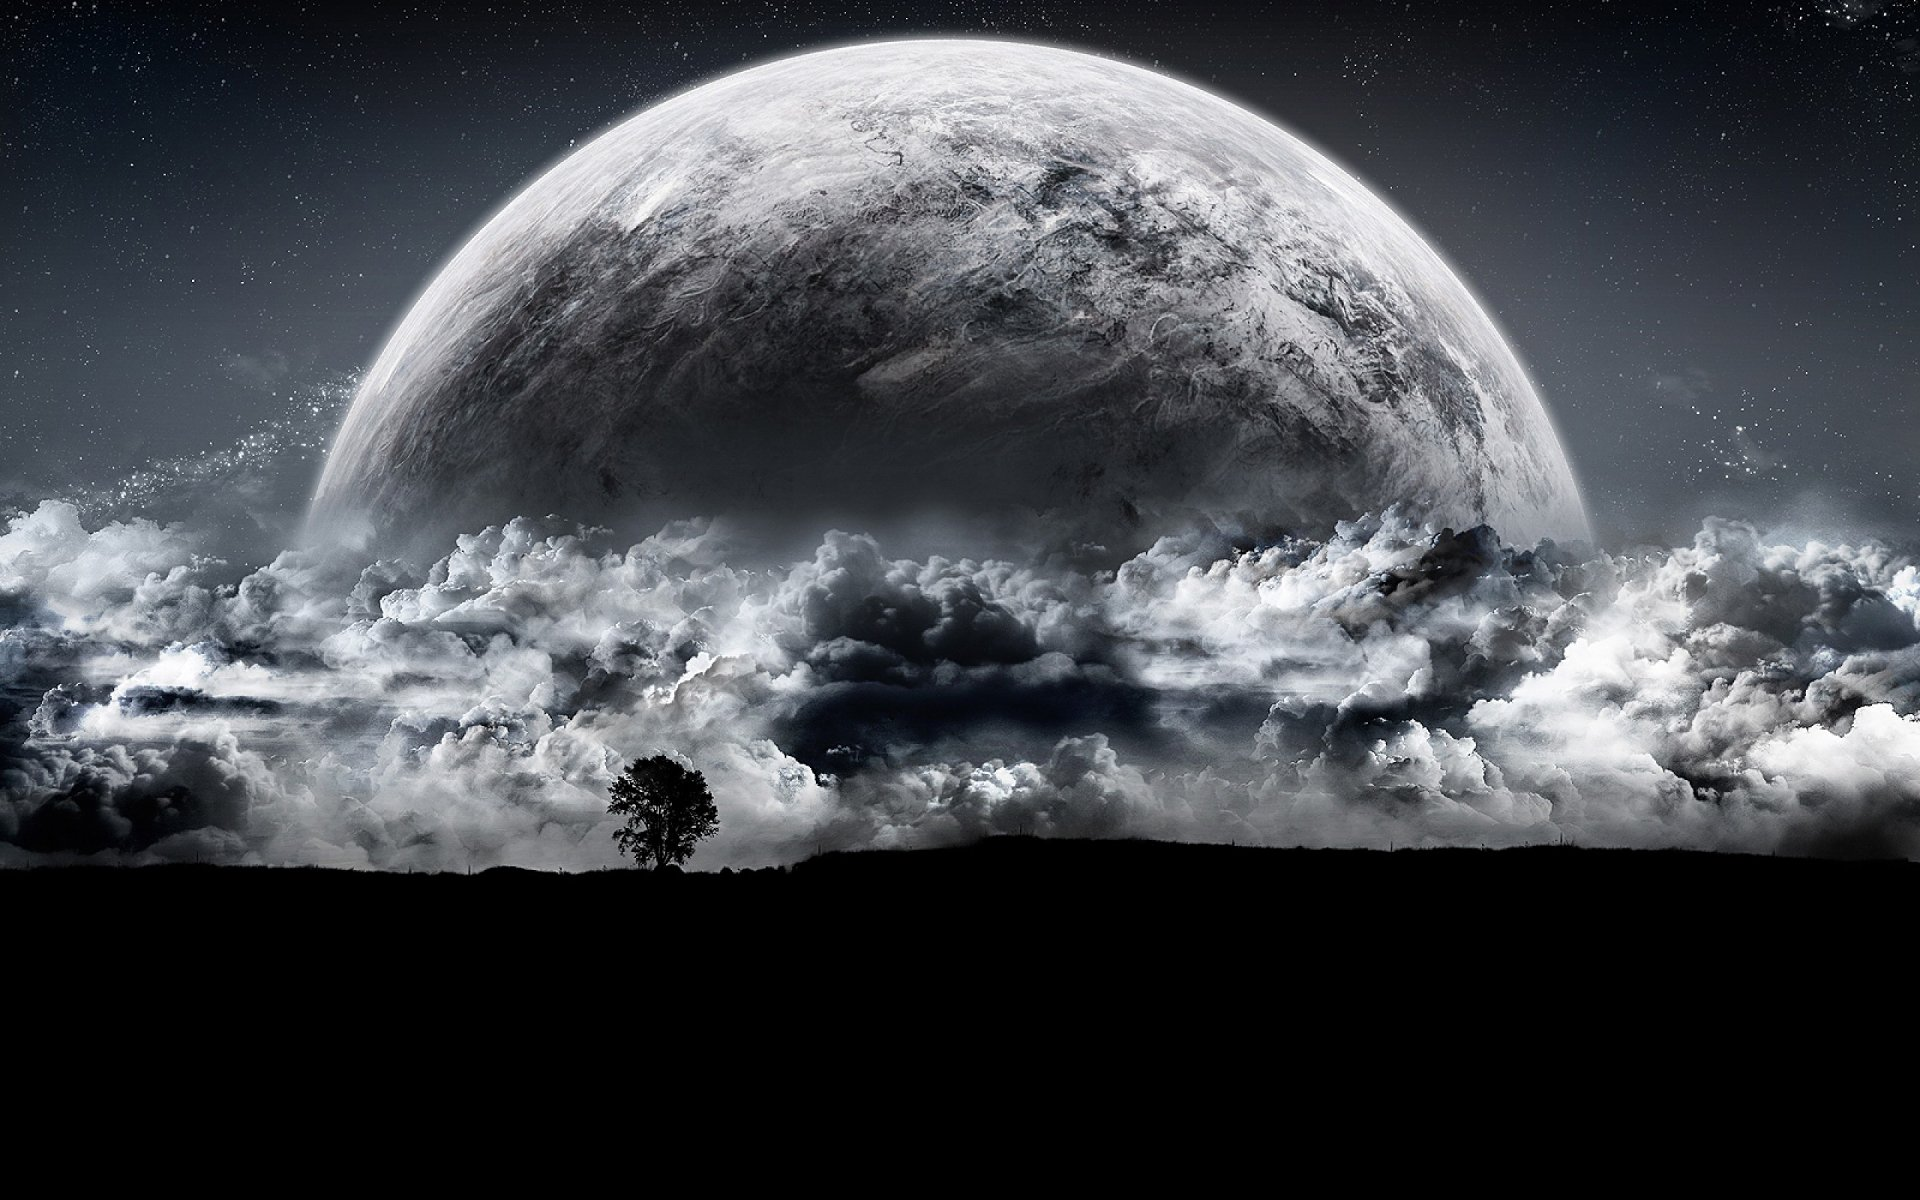 Hd Wallpaper Planet Moon